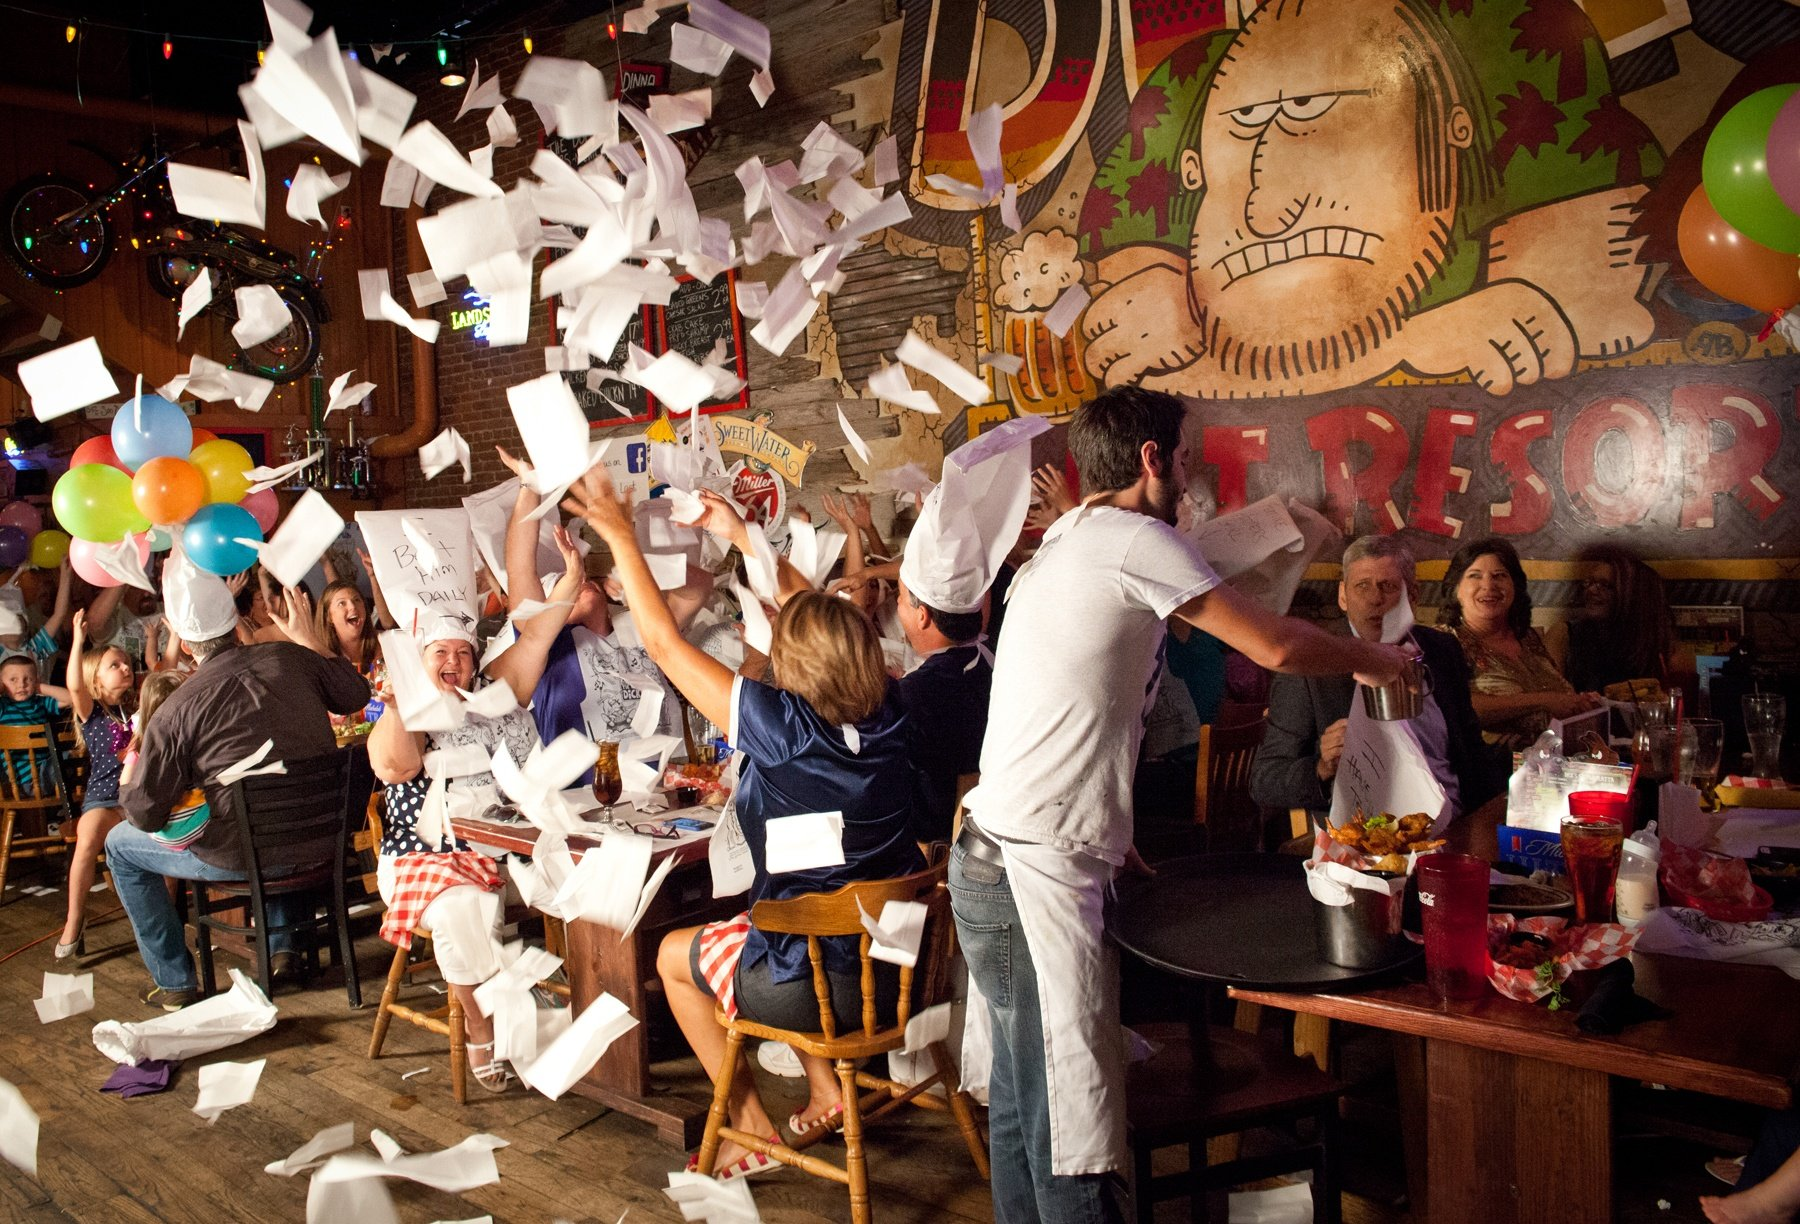 20 Days of Giveaways - Day 14: Dick's Last Resort